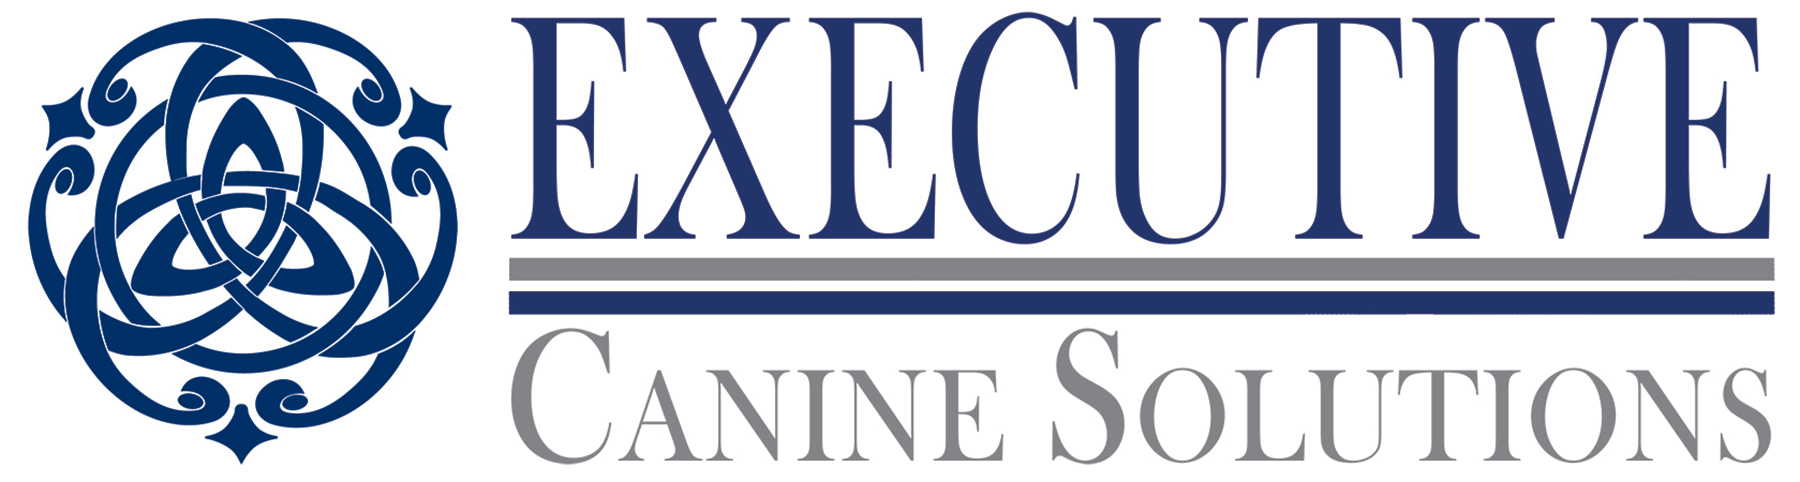 Executive Canine Solutions - ad image